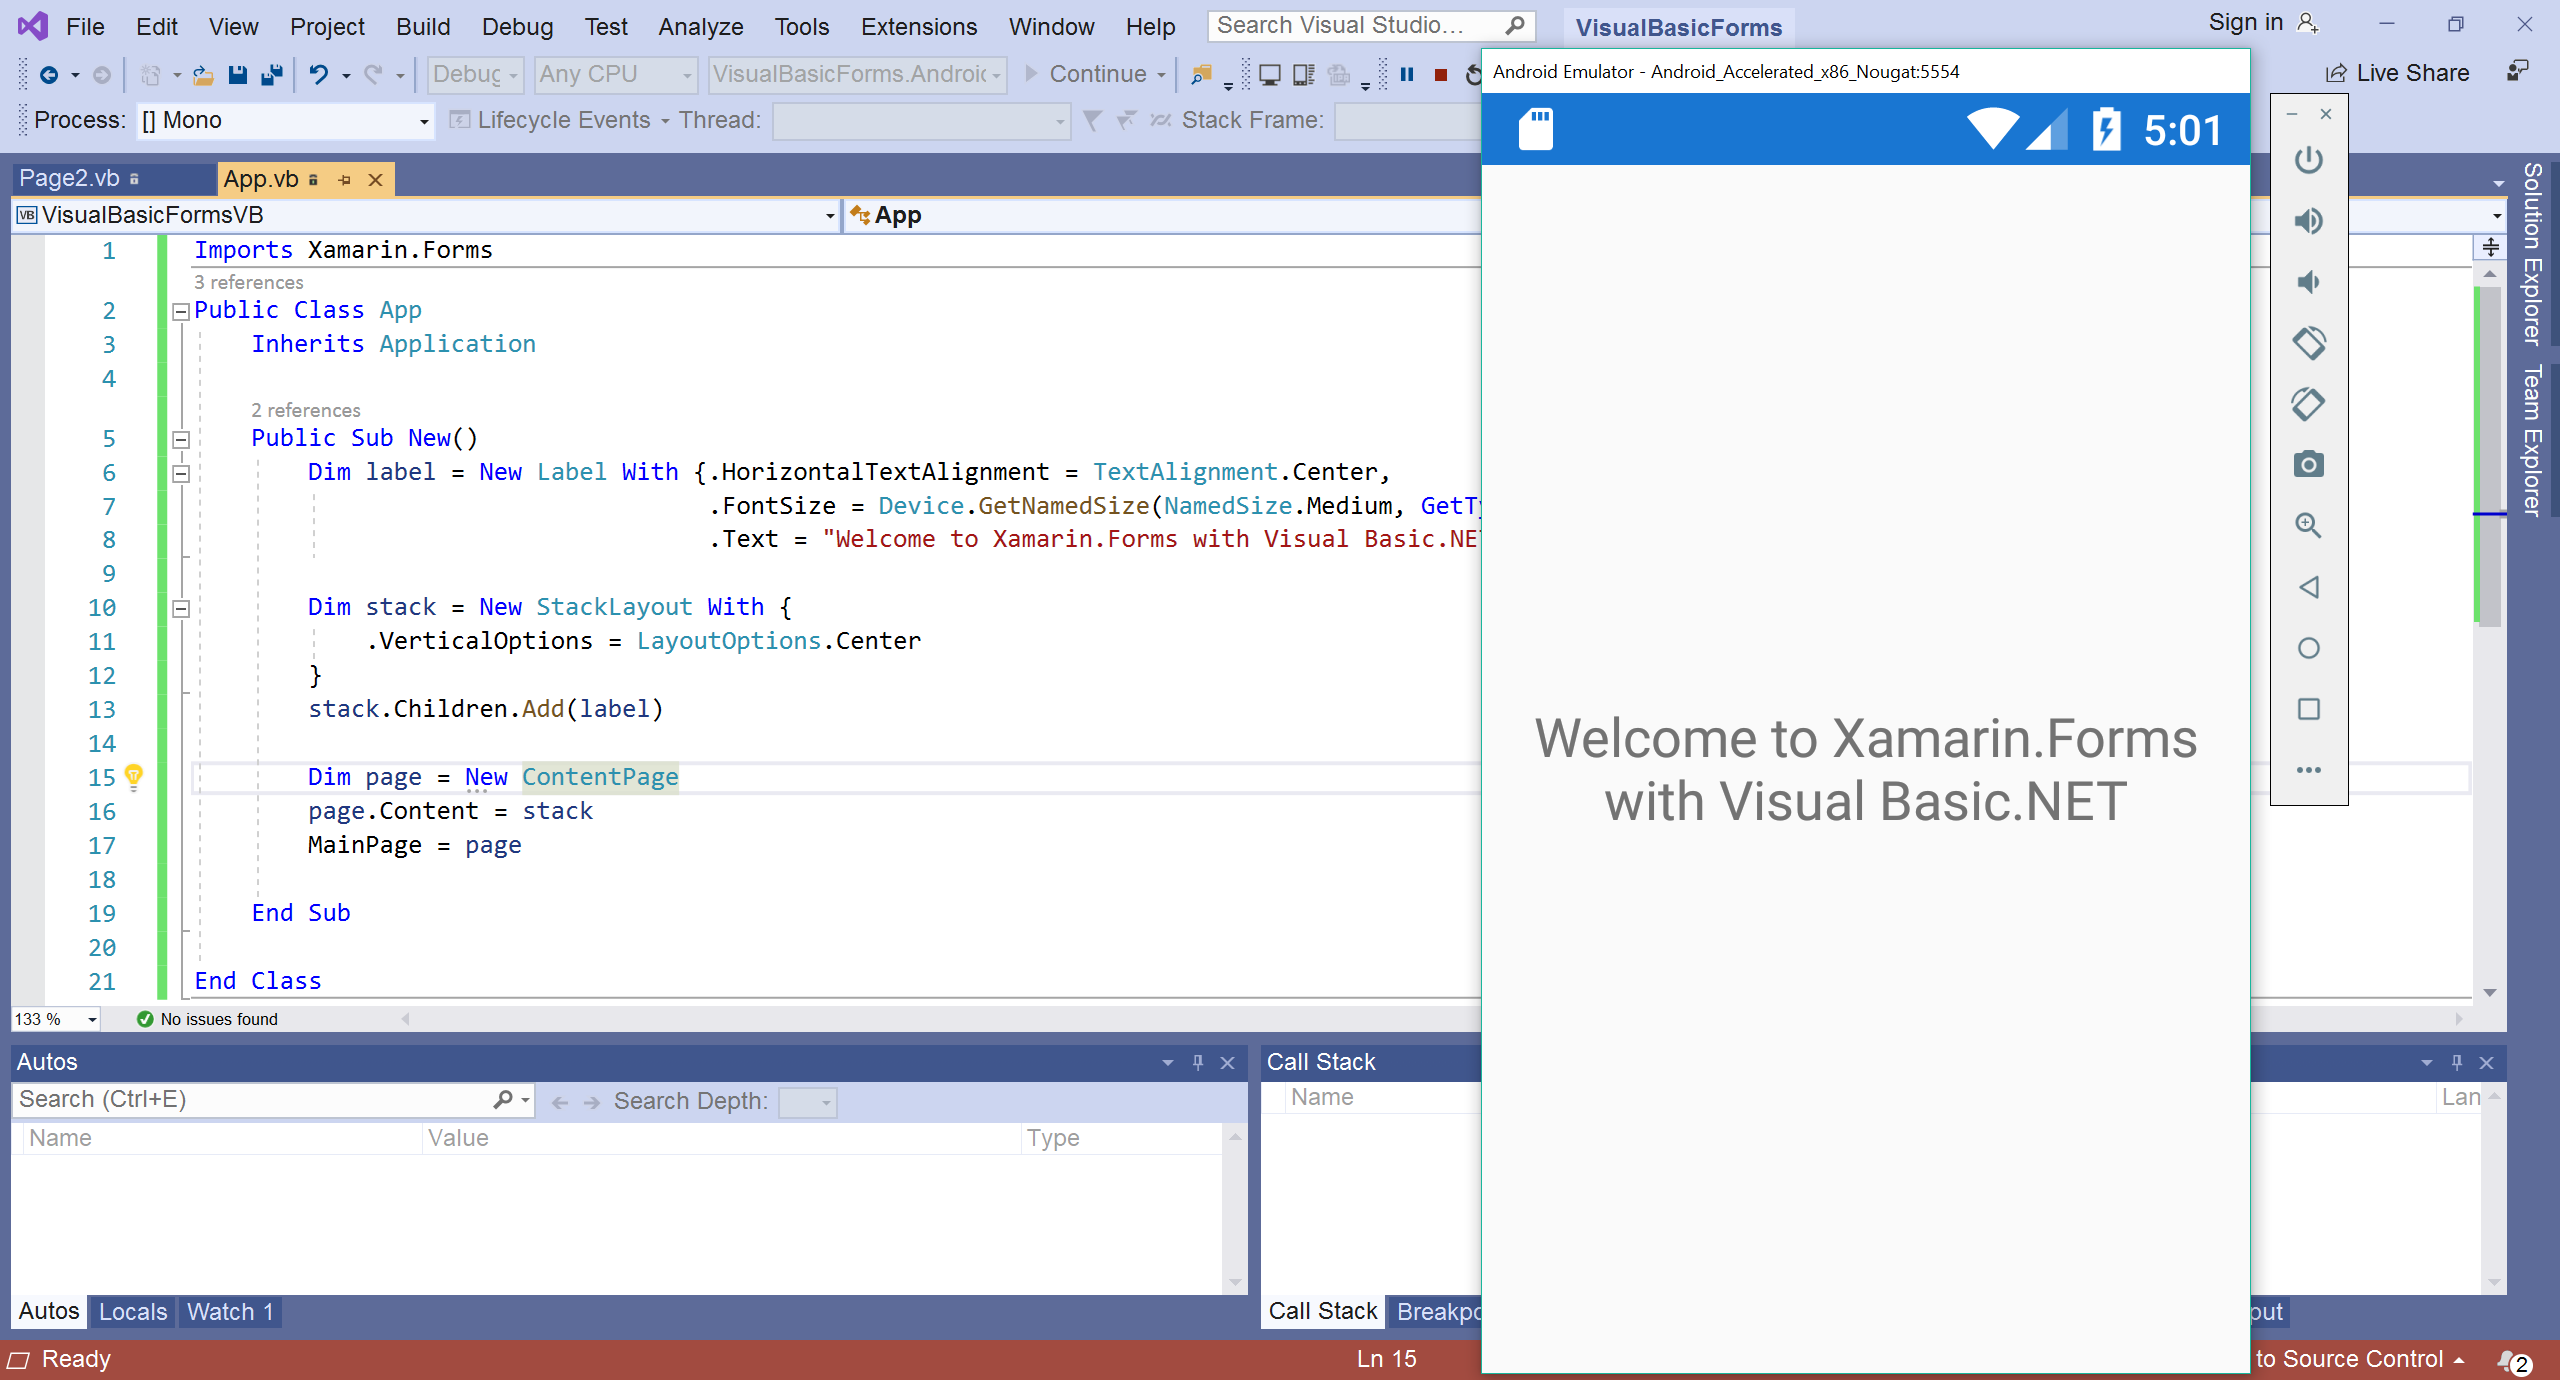 Xamarin Forms using Visual Basic NET - Xamarin | Microsoft Docs